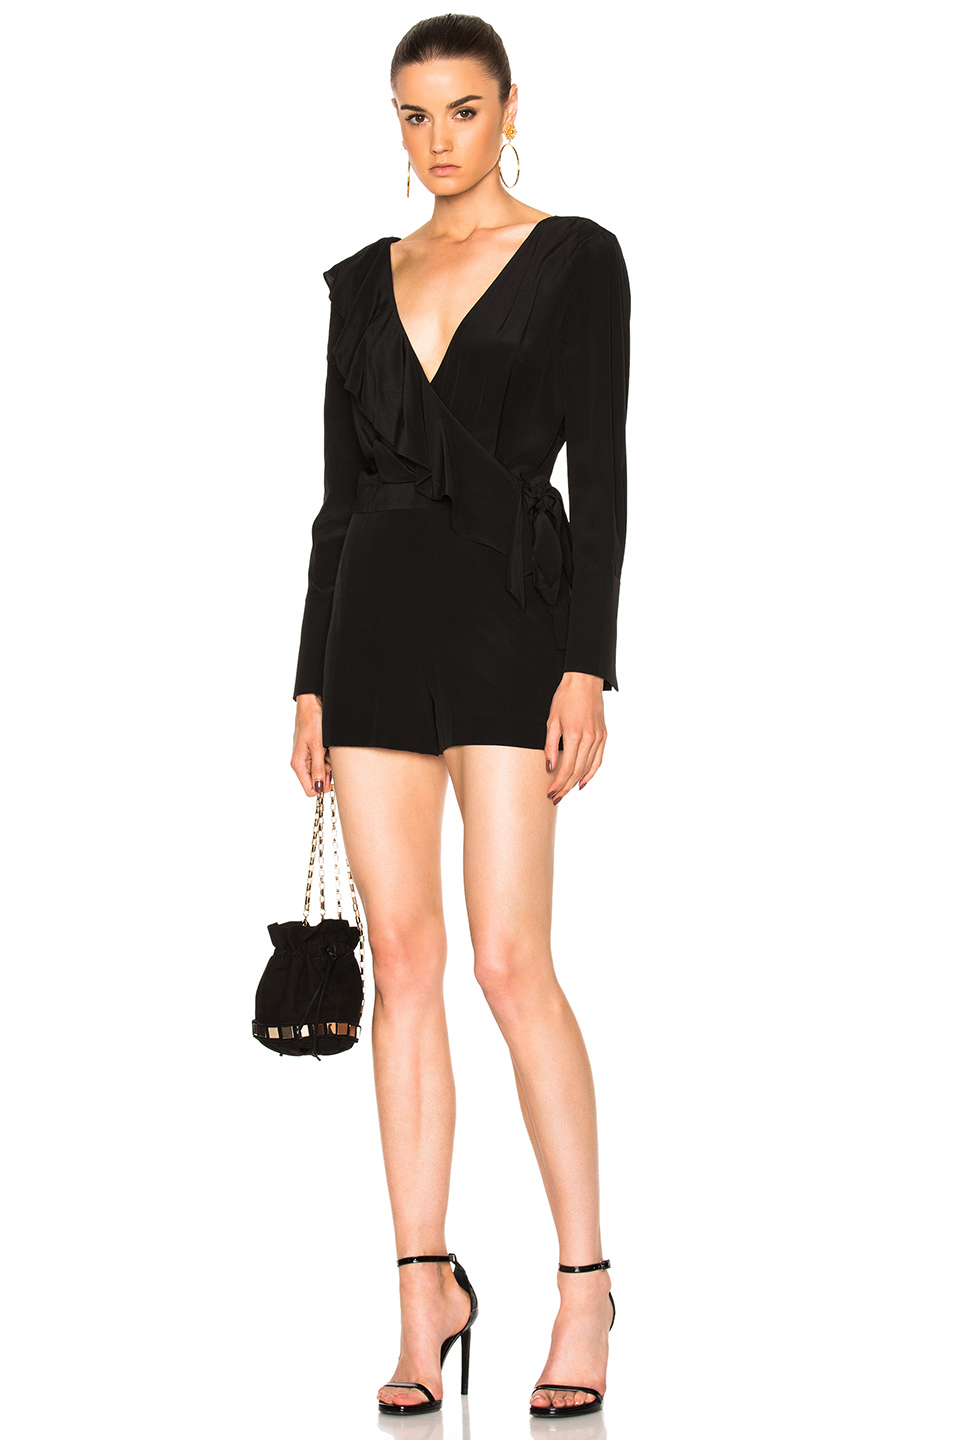 Photo of Diane von Furstenberg Asymmetric Ruffle Romper in Black online sales